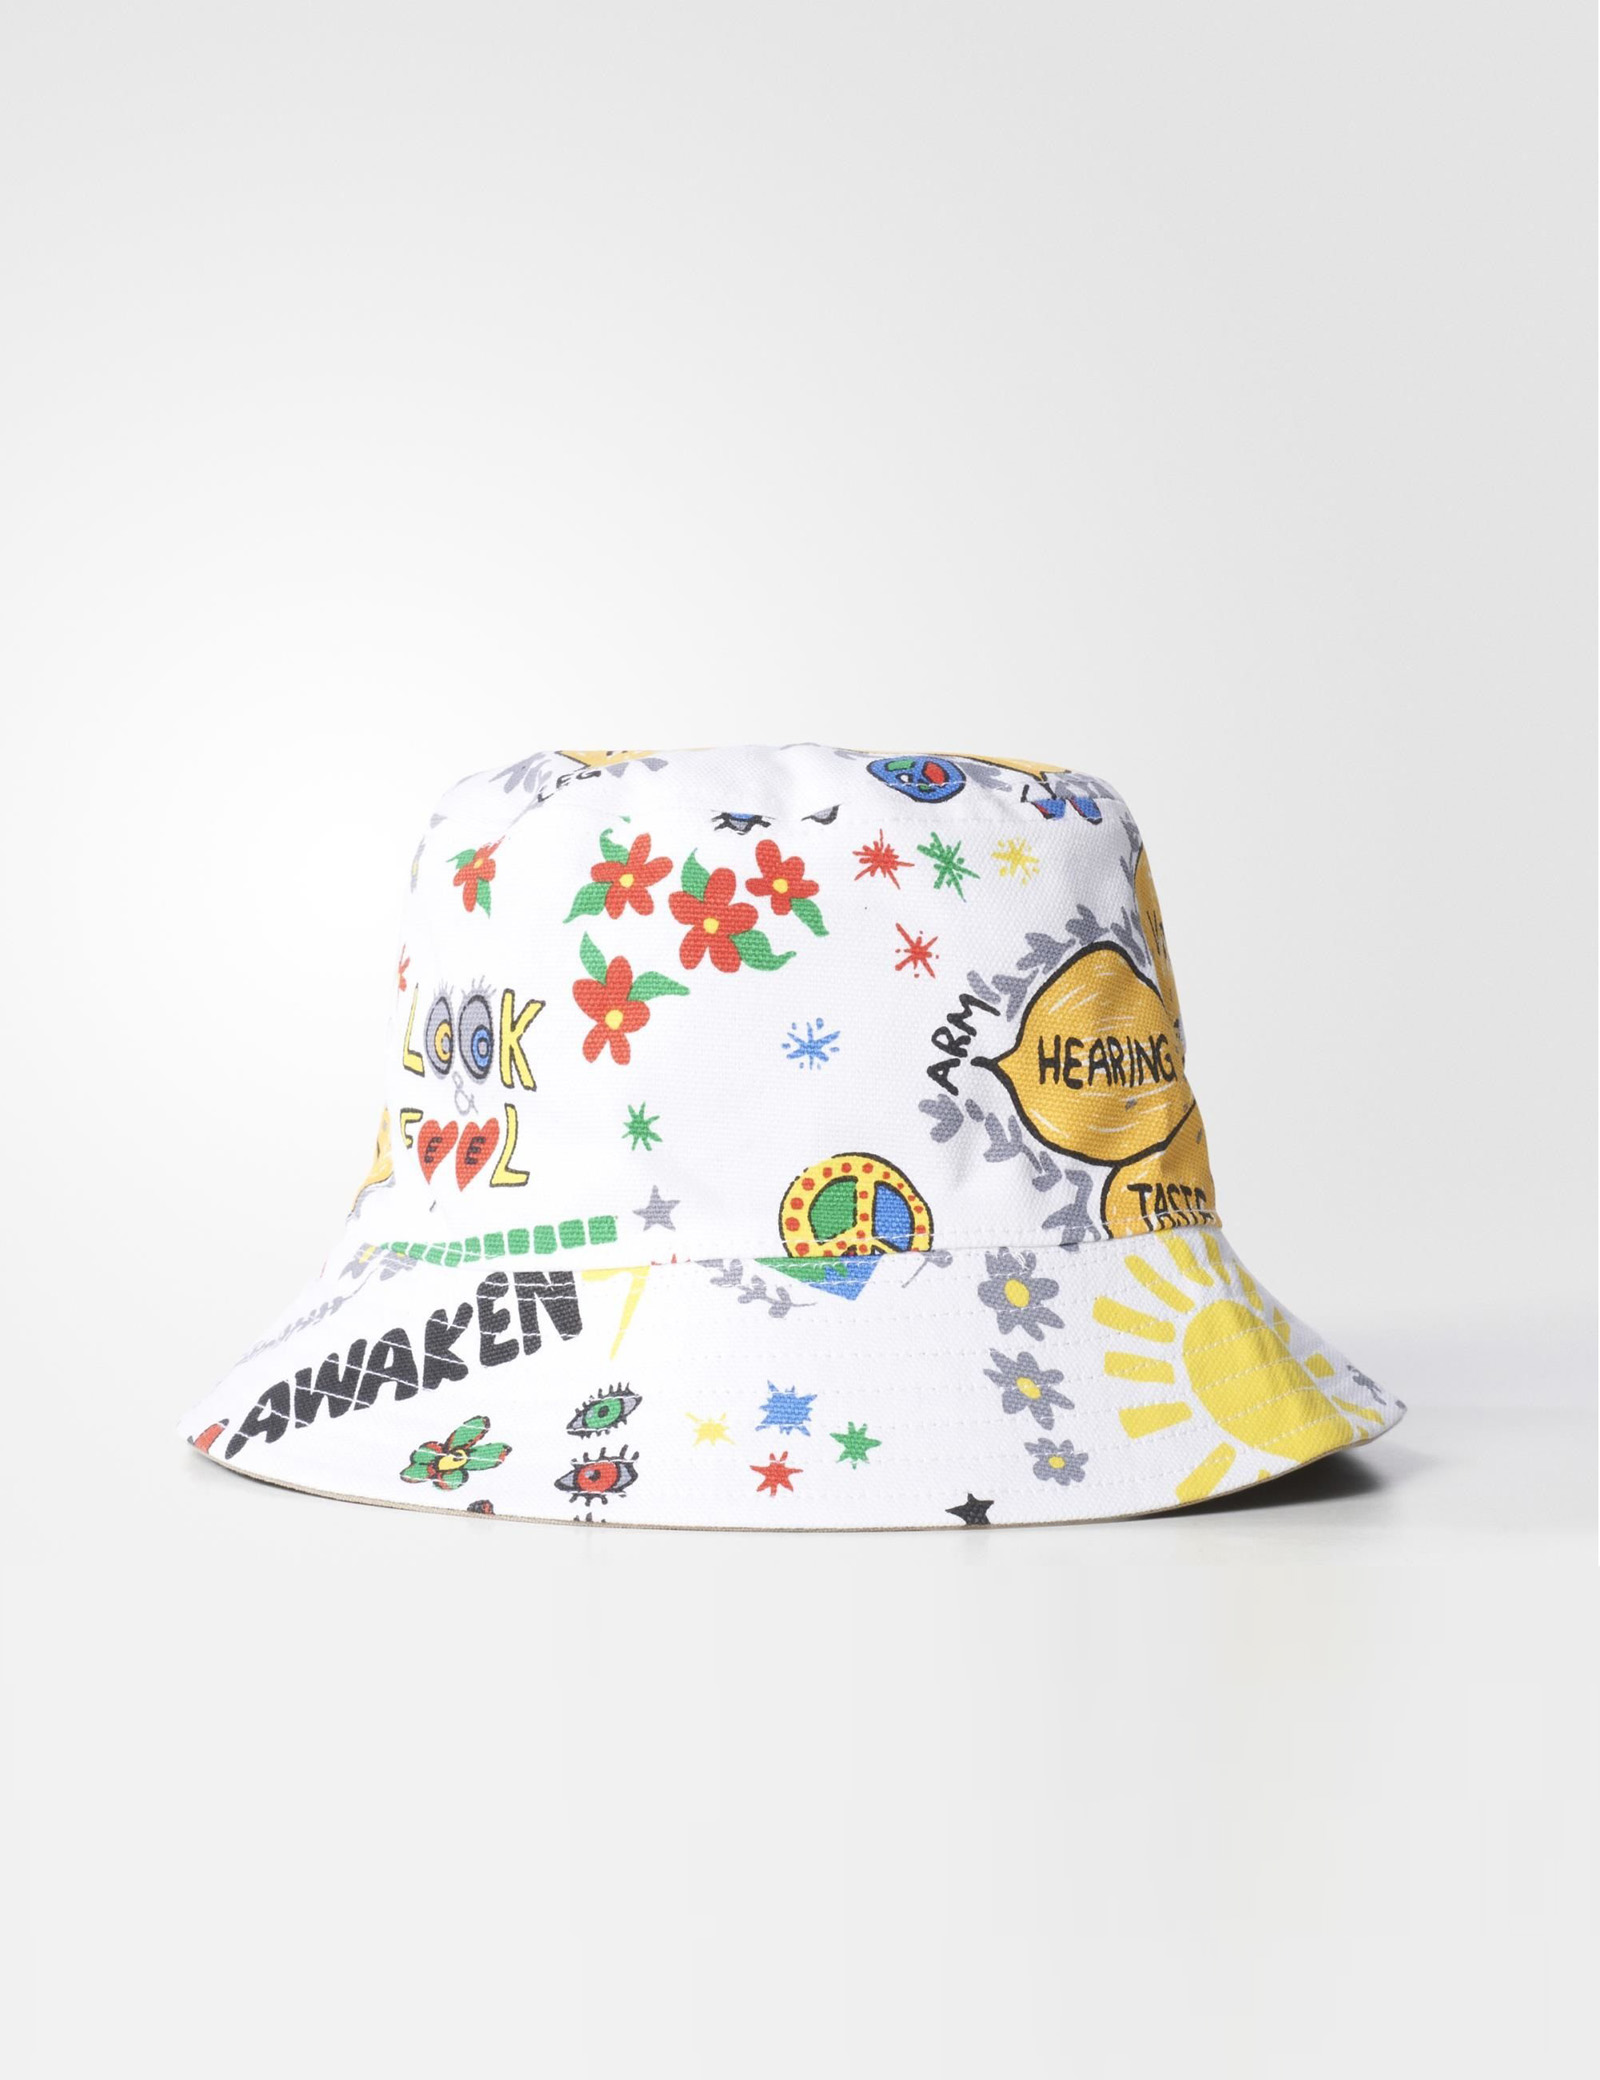 Bucket Hat – Newspeak – Responsive   Retina Ready News   Magazine   Blog 6bca40bff